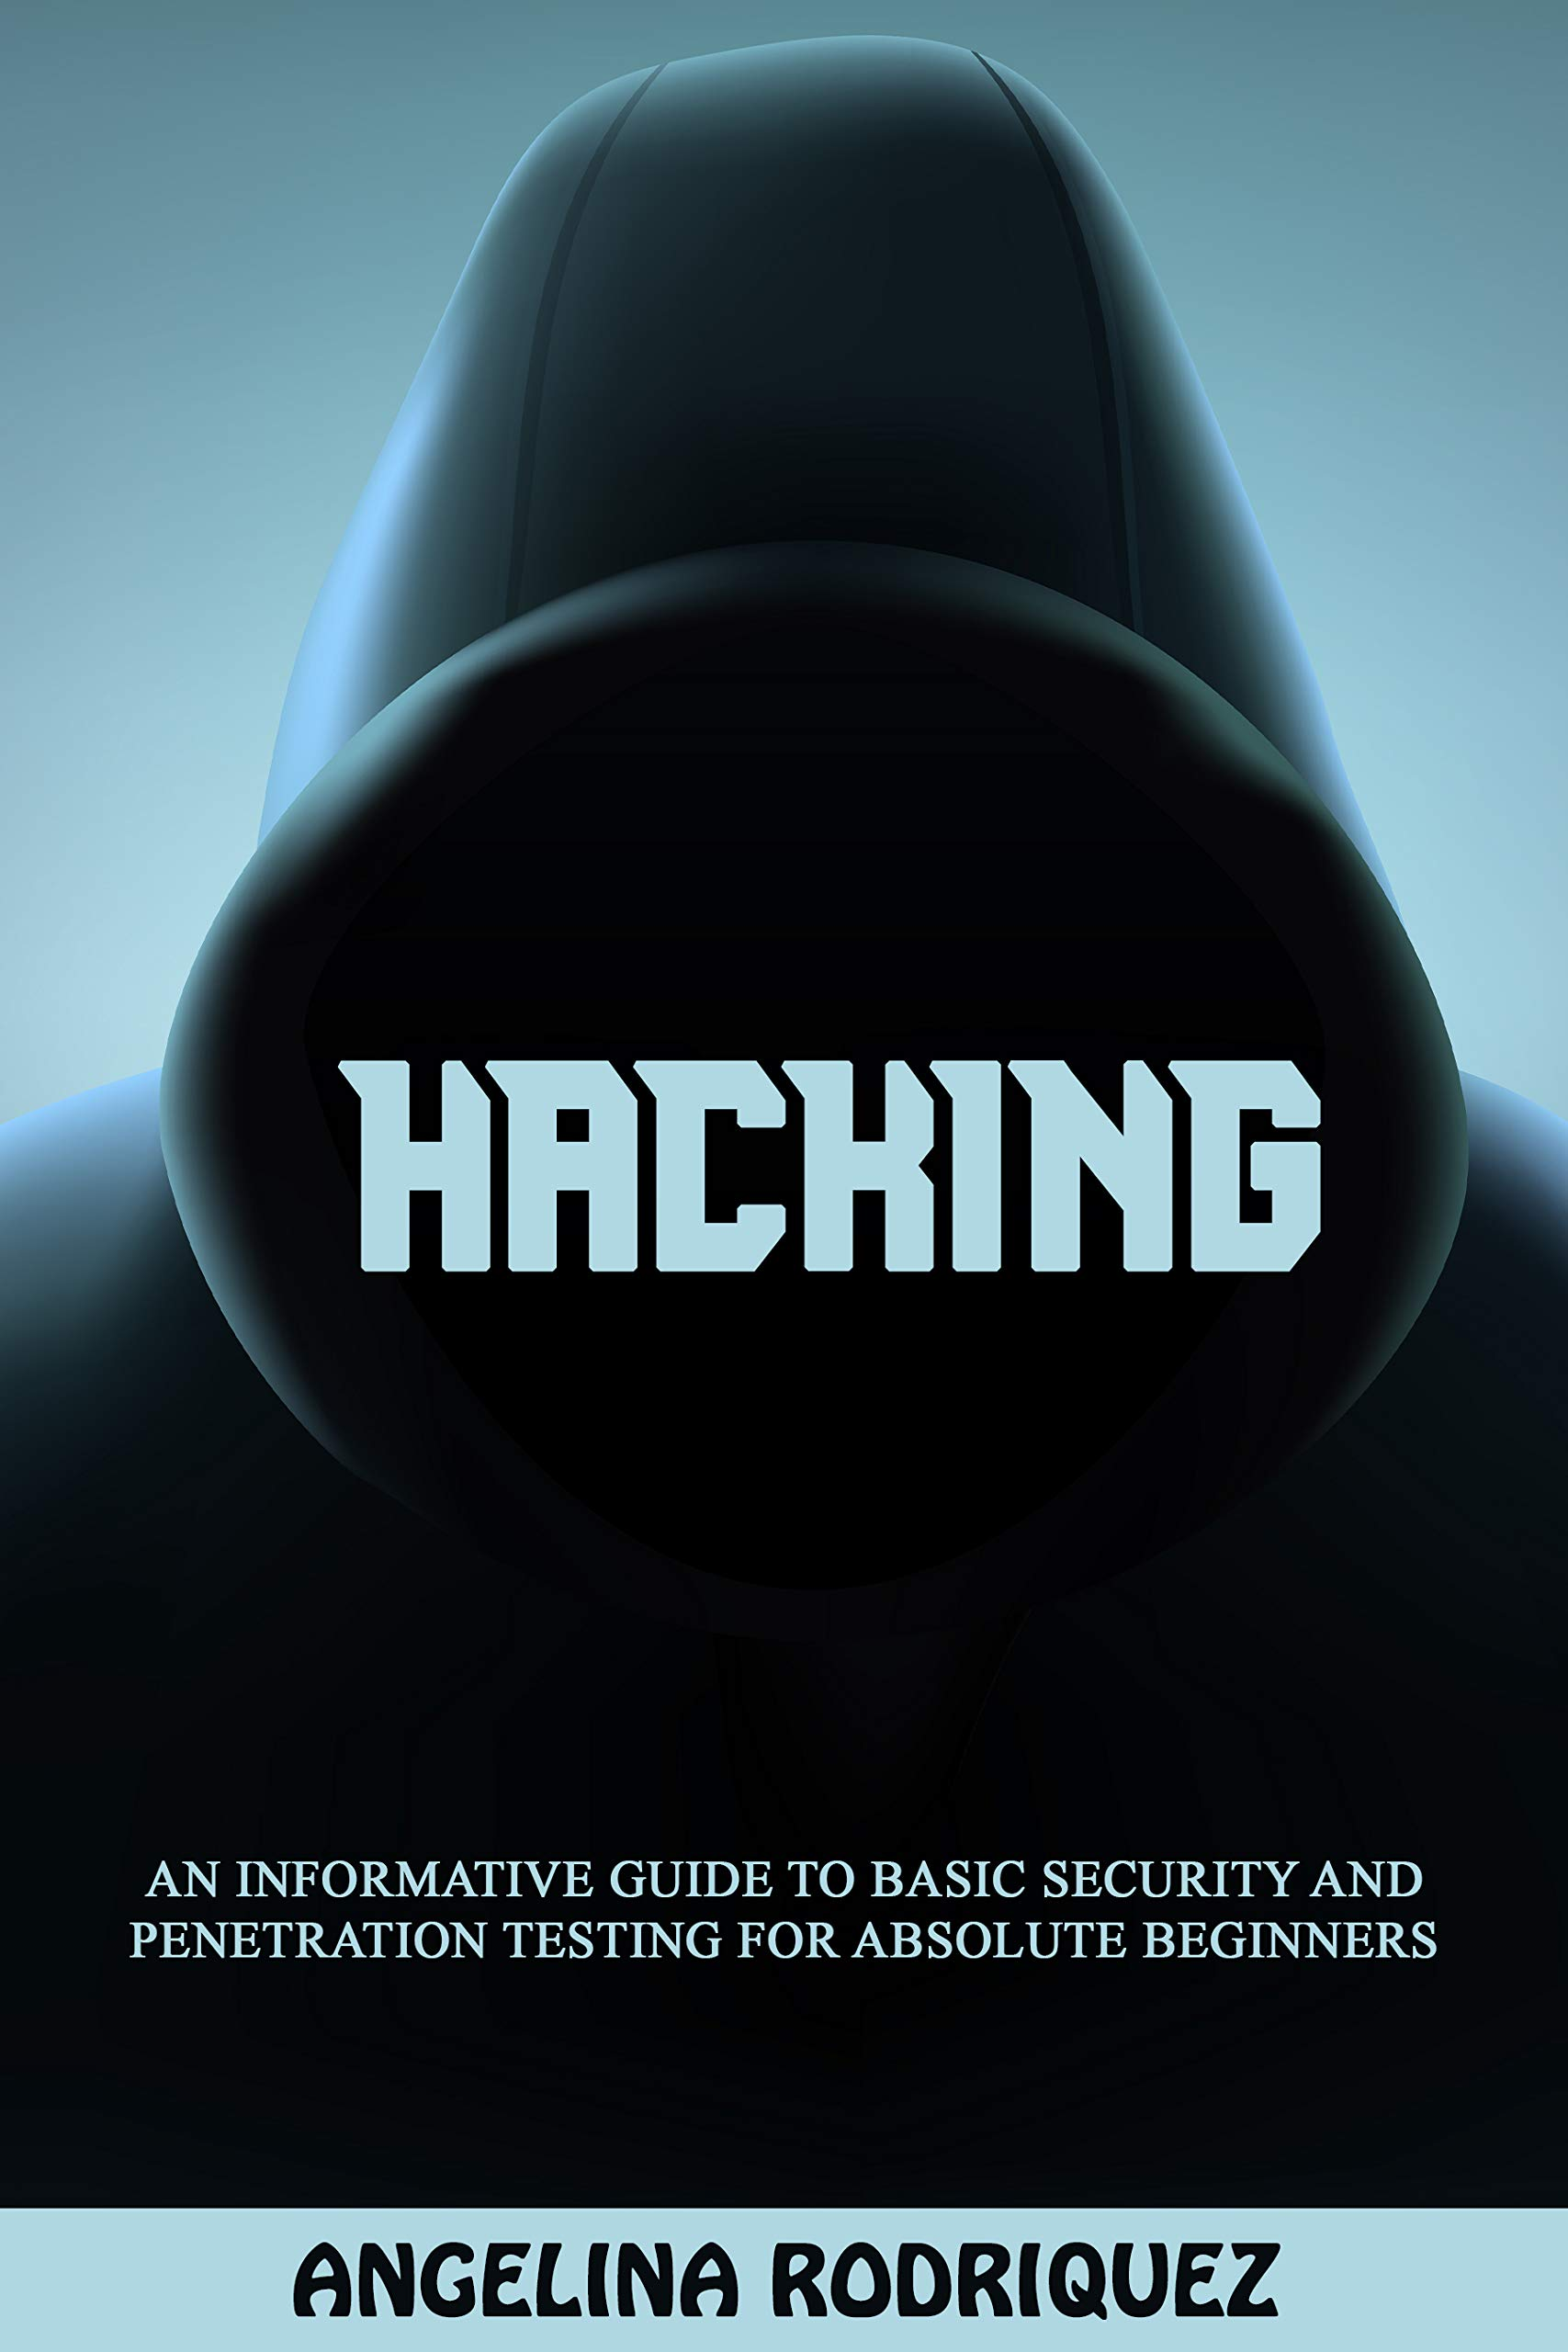 Hacking: An Informative Guide To Basic Security and Penetration Testing For Absolute Beginners